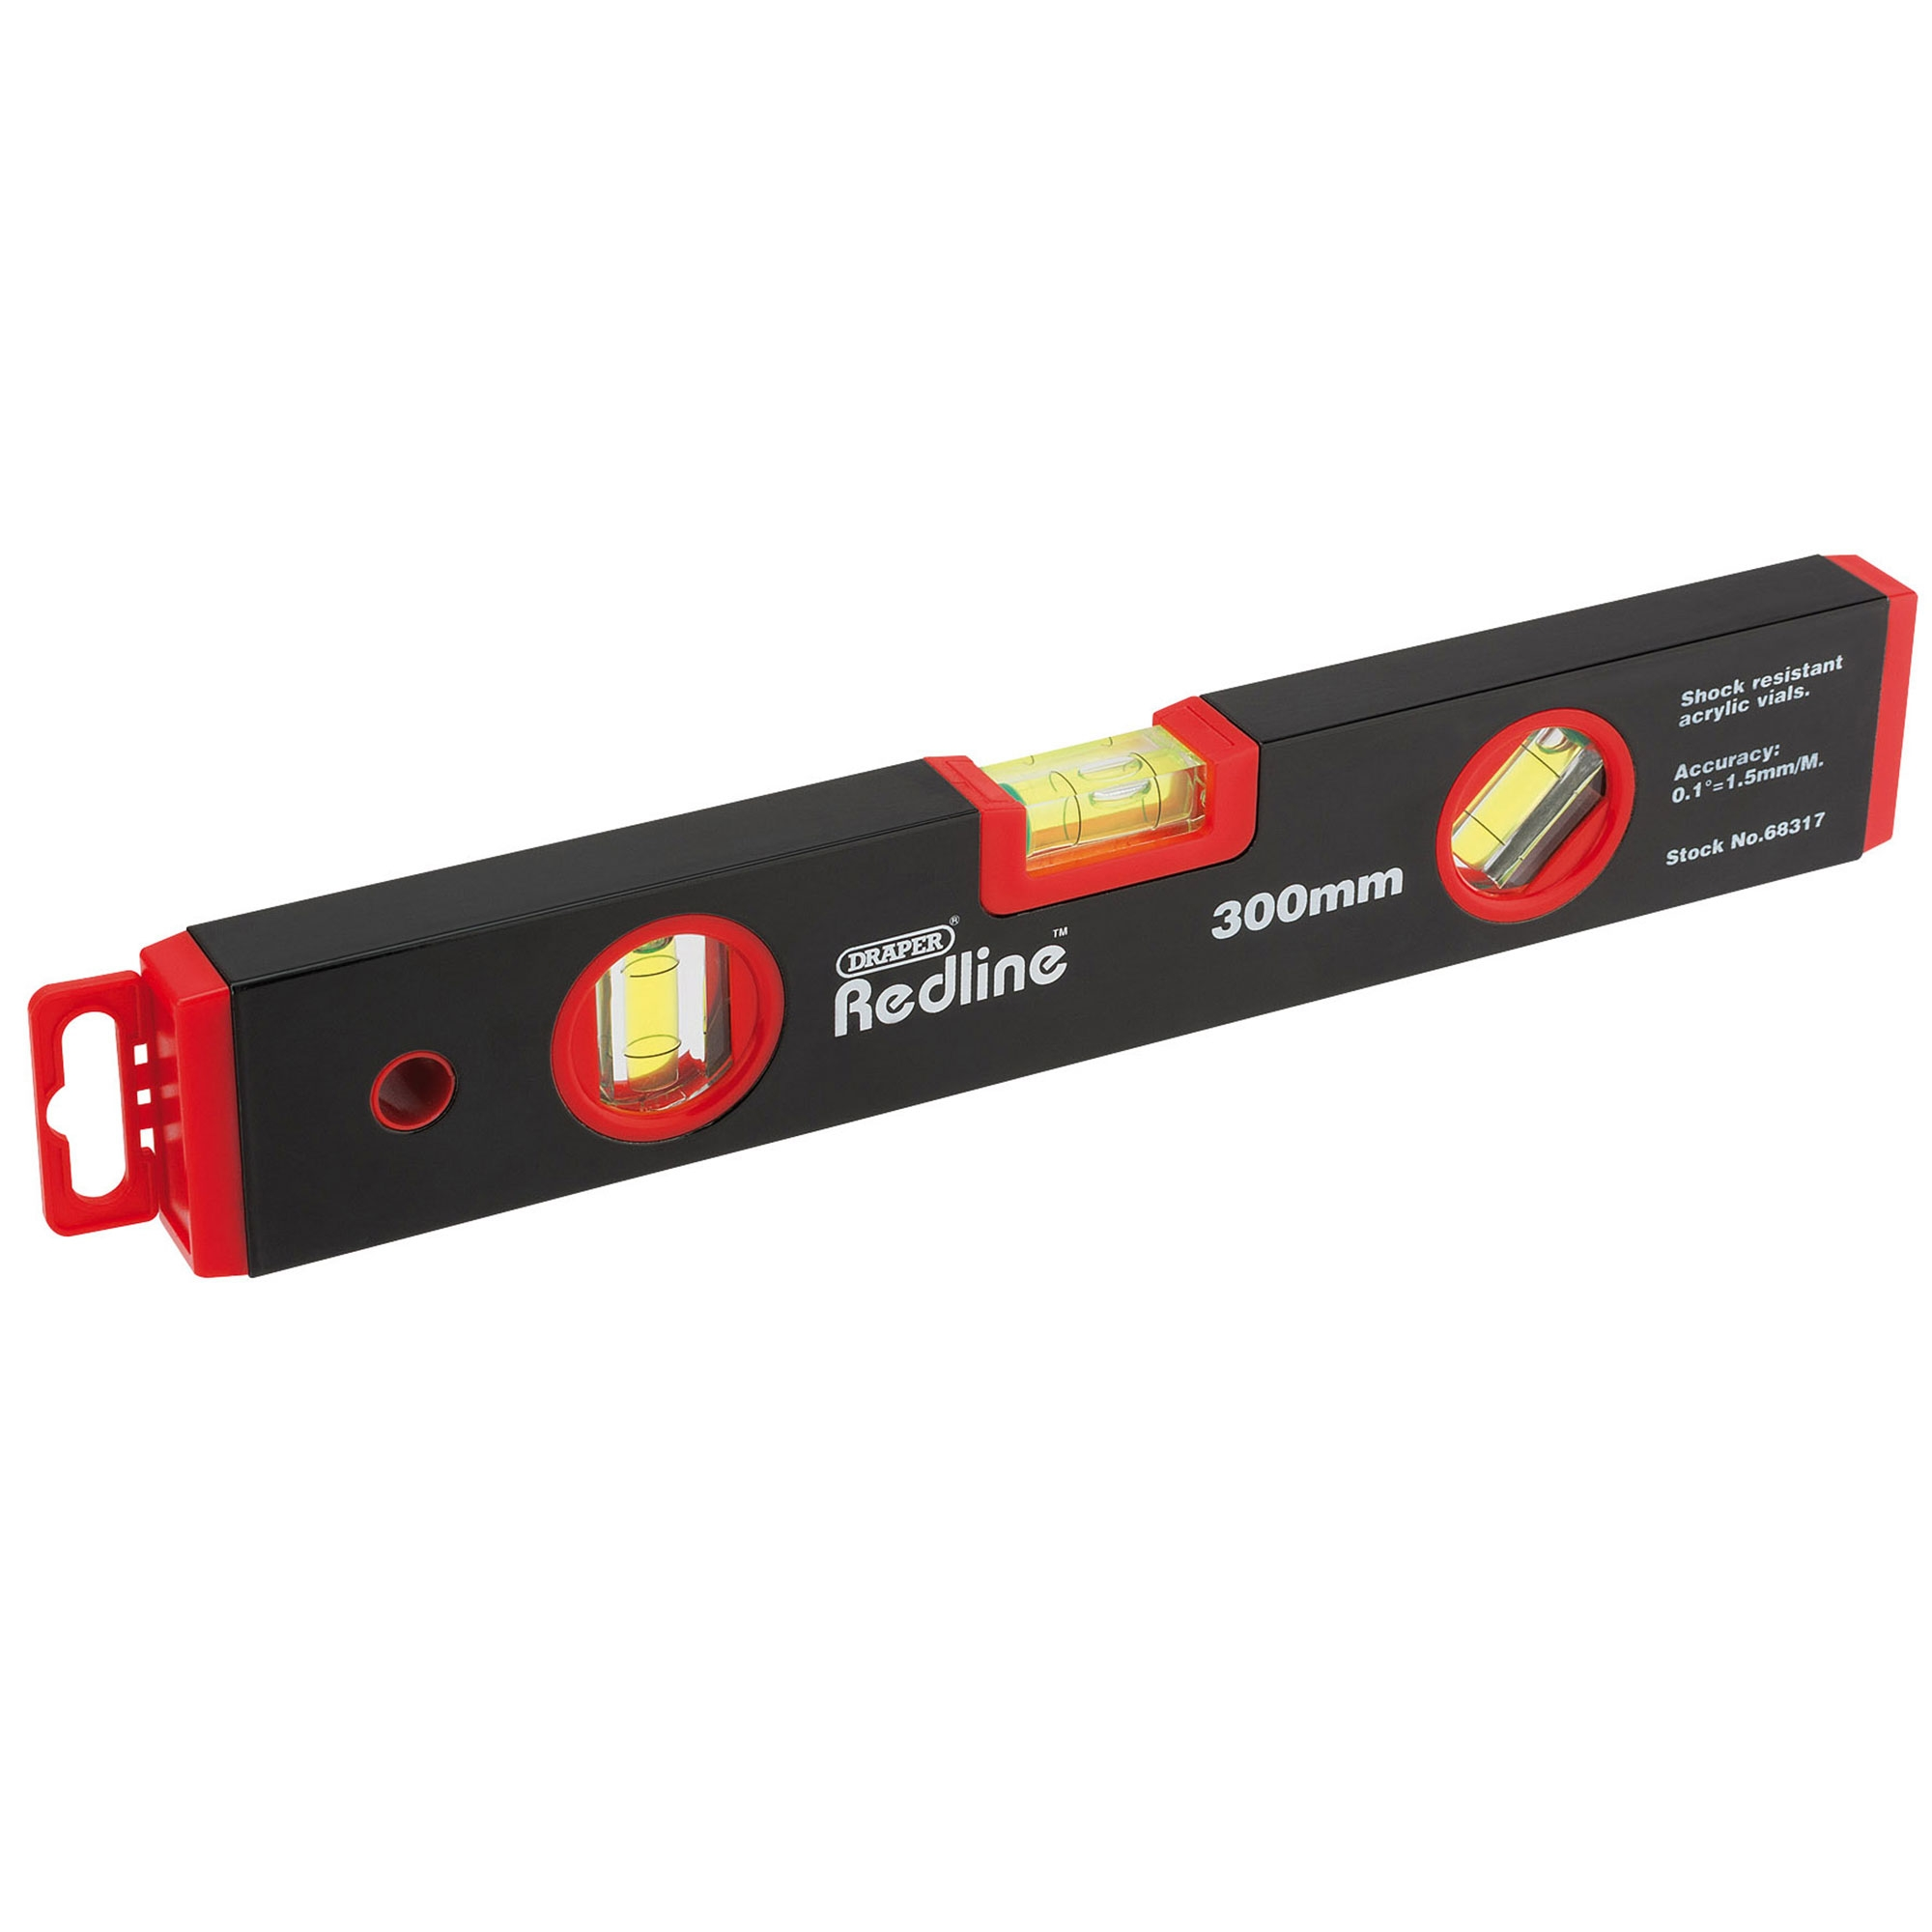 Box Spirit Level 900mm Section Draper 68017 Redline